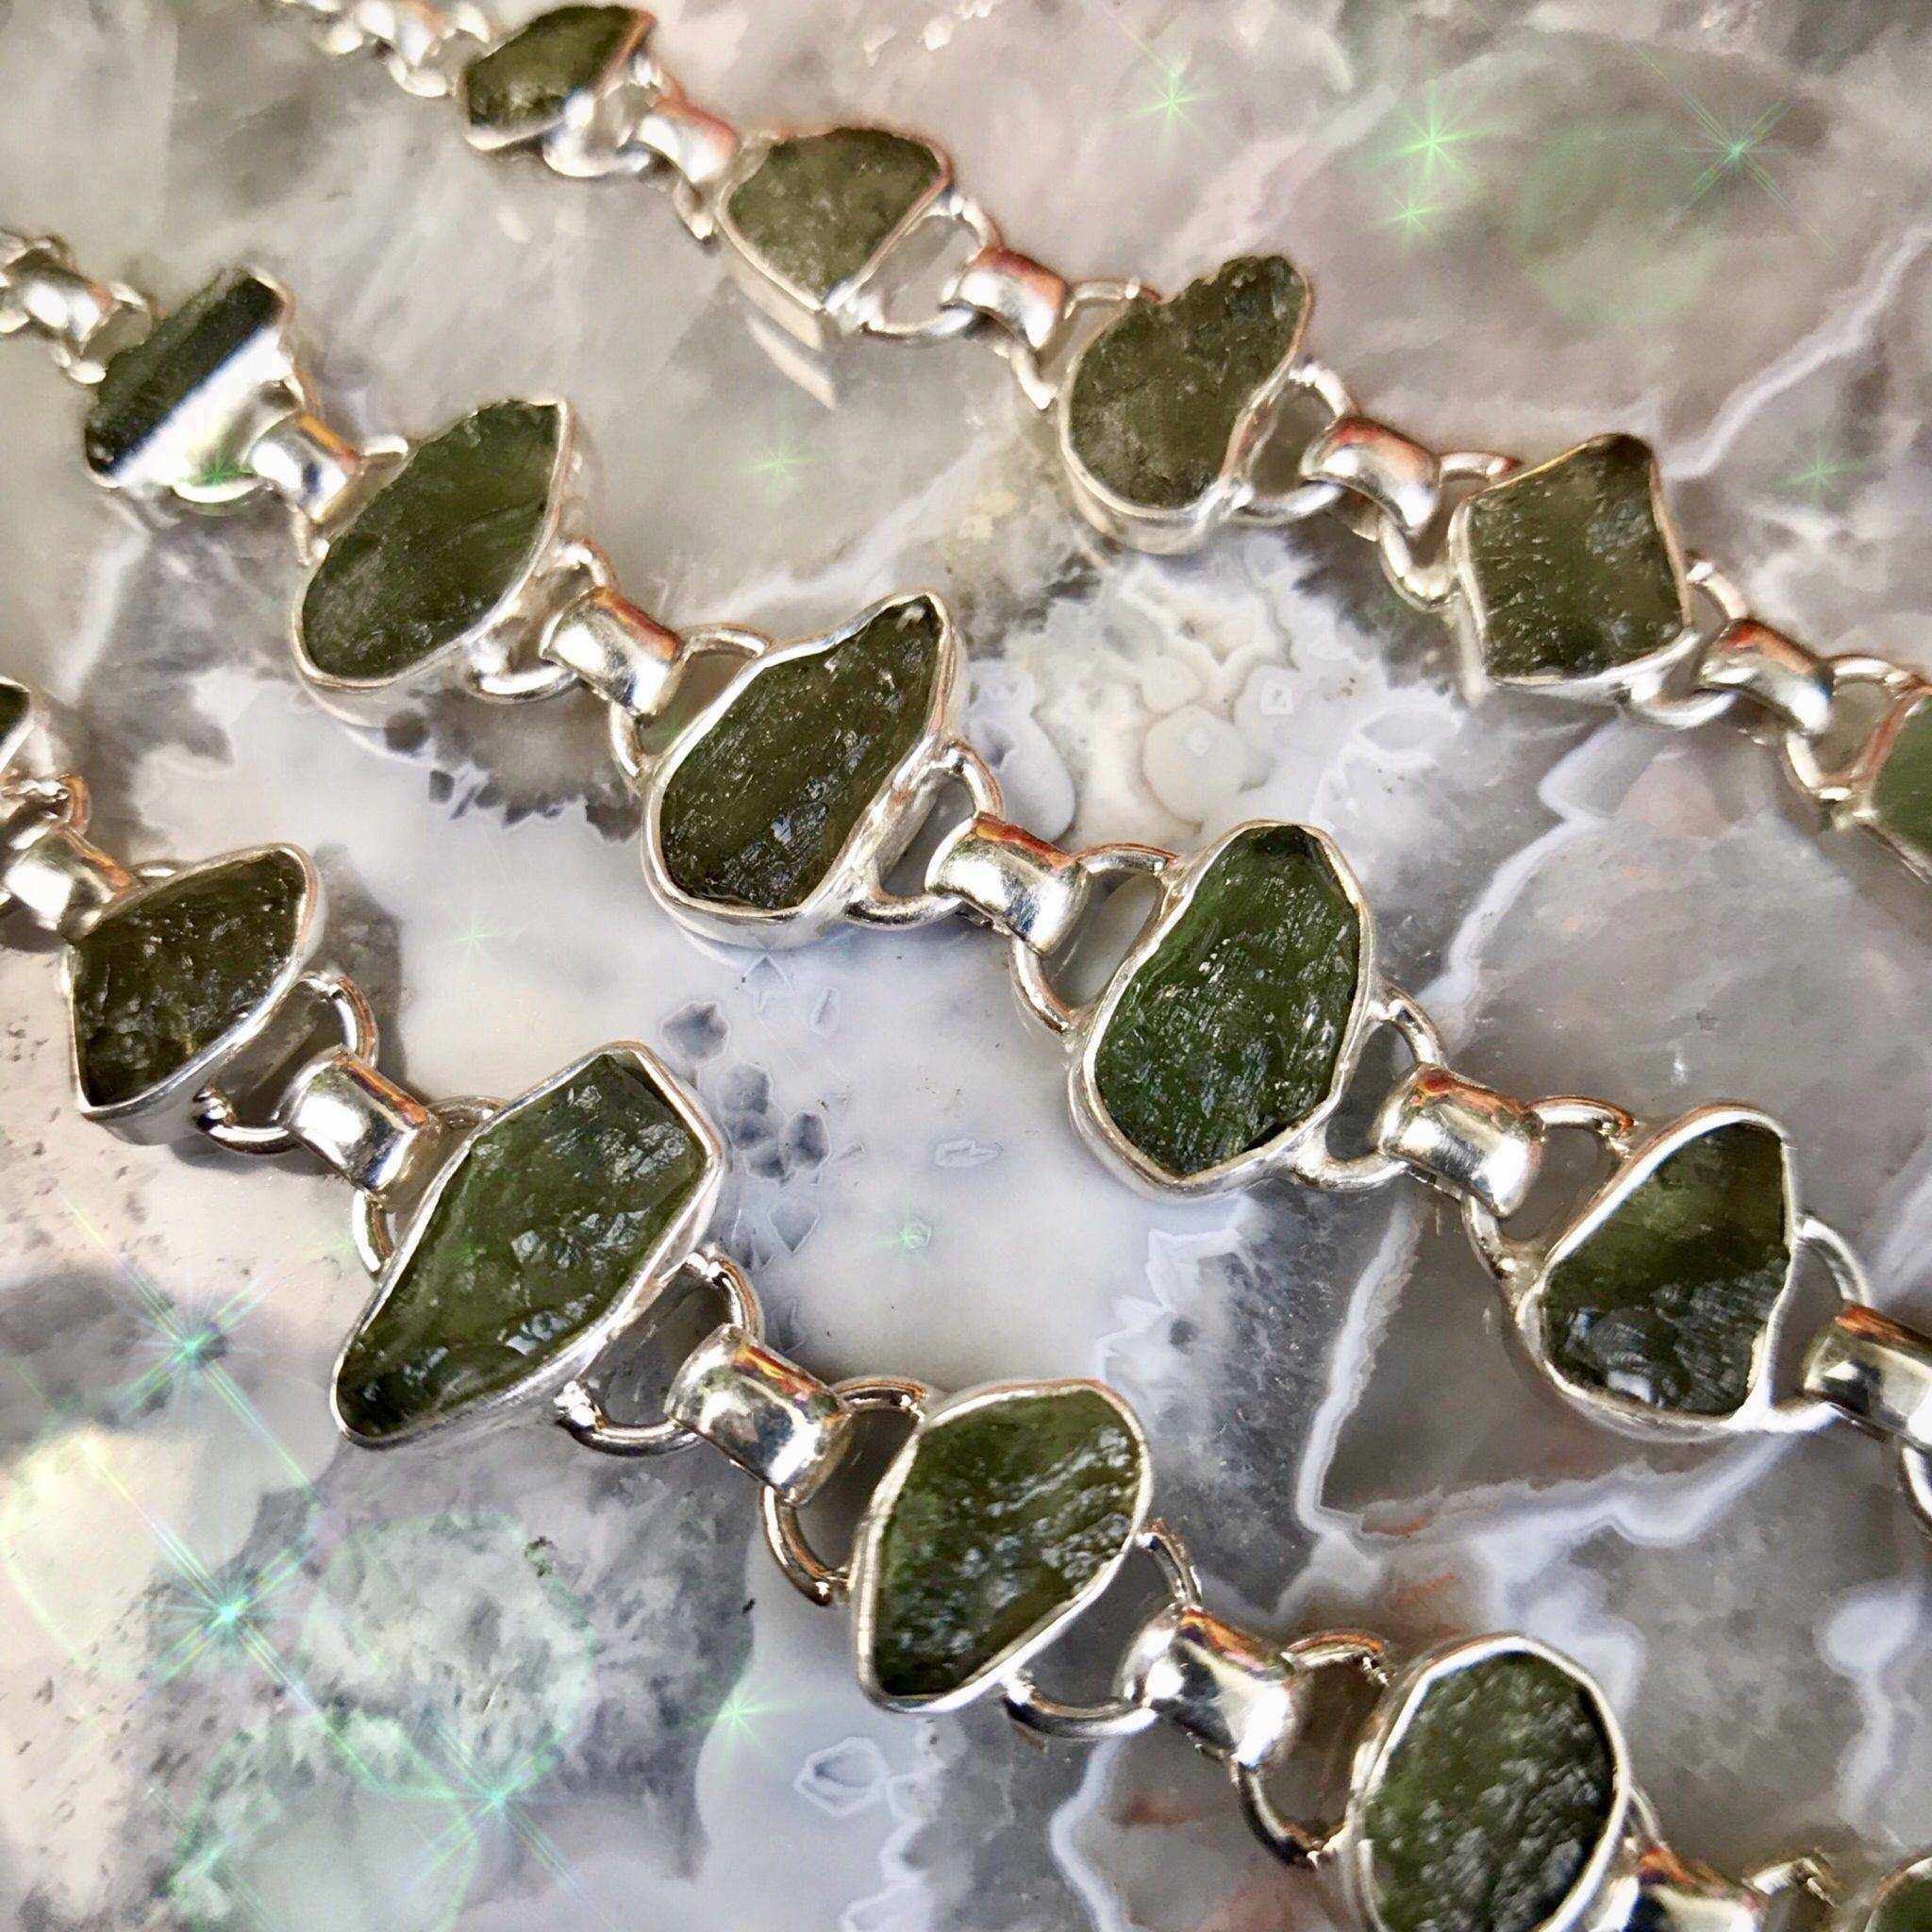 Genuine Moldavite Bracelets for powerful spiritual growth